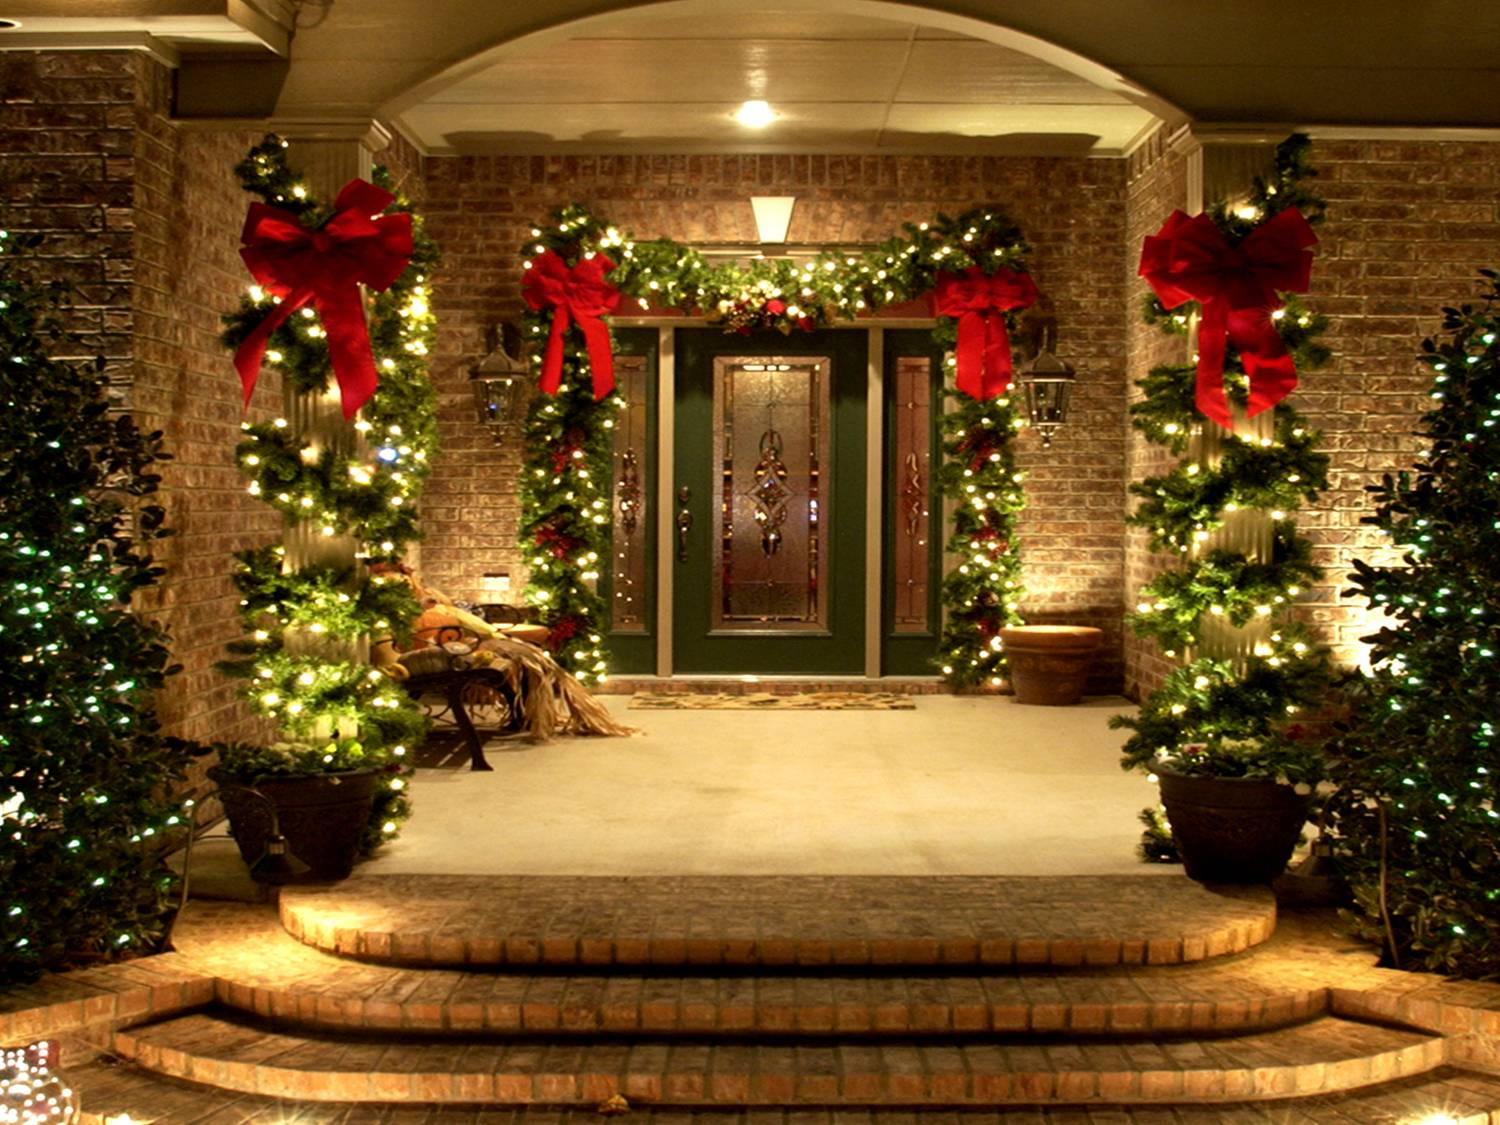 Homes and Commercial Properties Become Destinations with Christmas ...